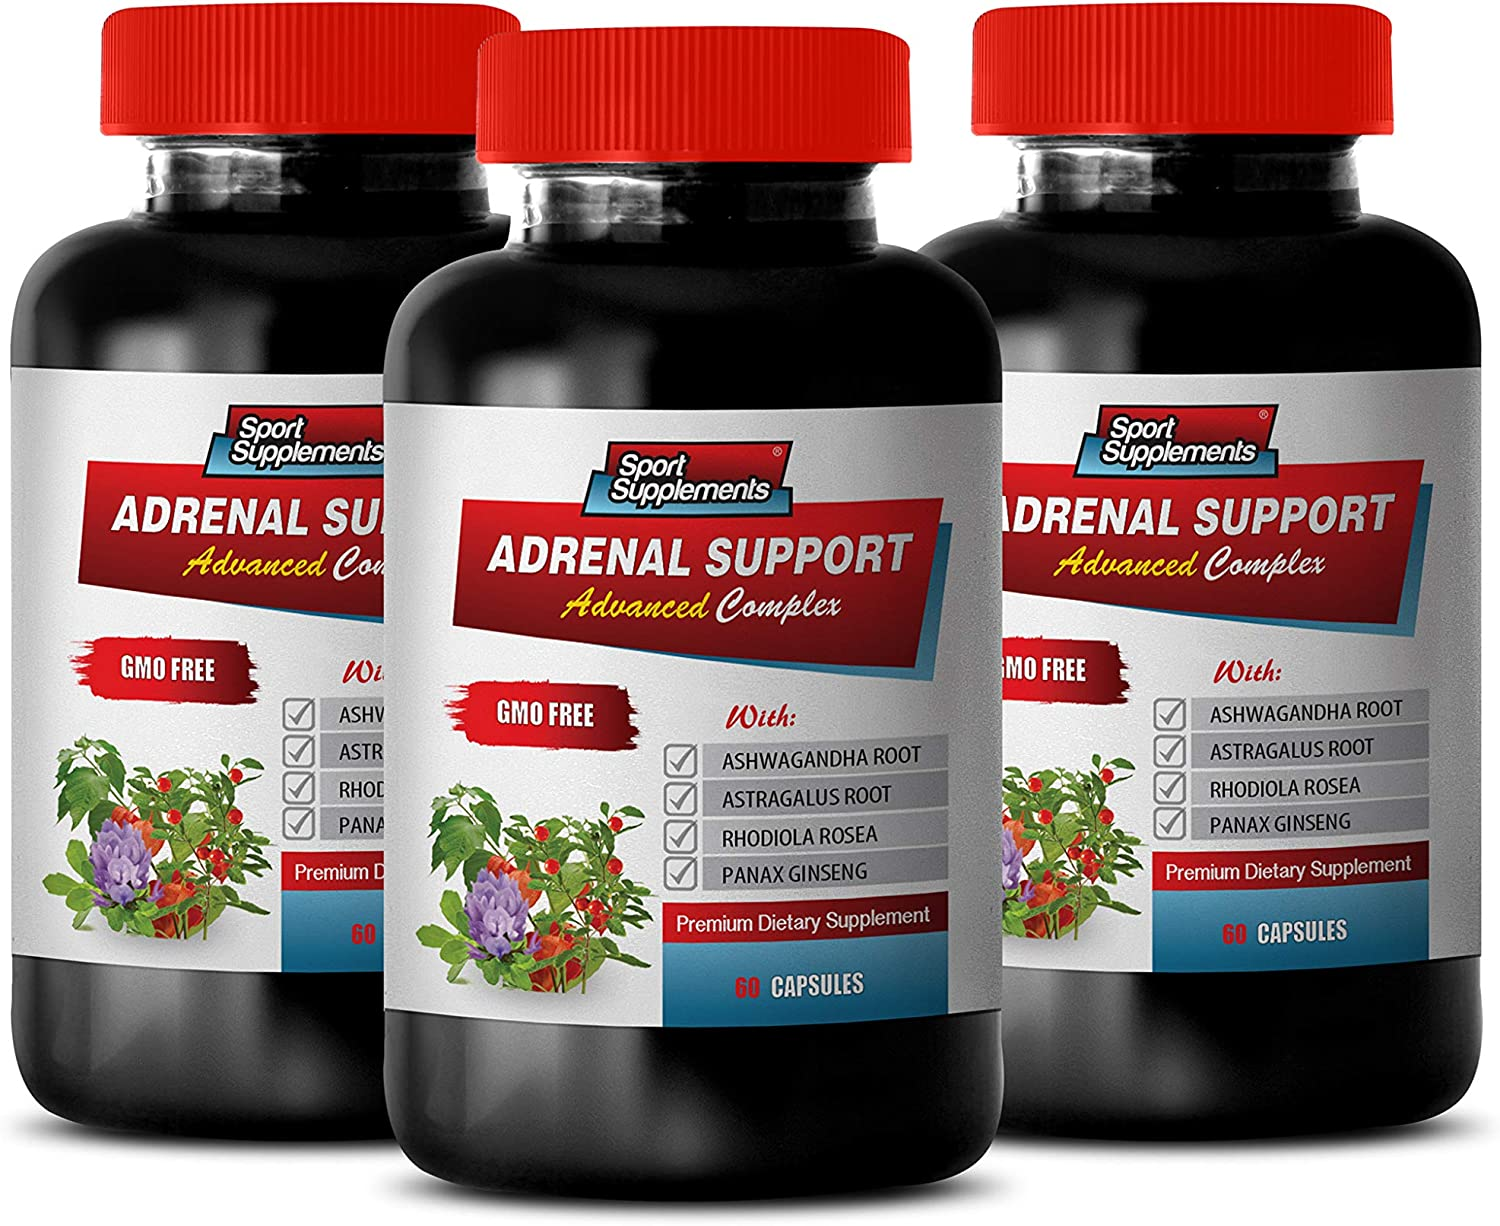 Immune System Booster for Women - Spring new work Support Free GMO A San Francisco Mall Adrenal